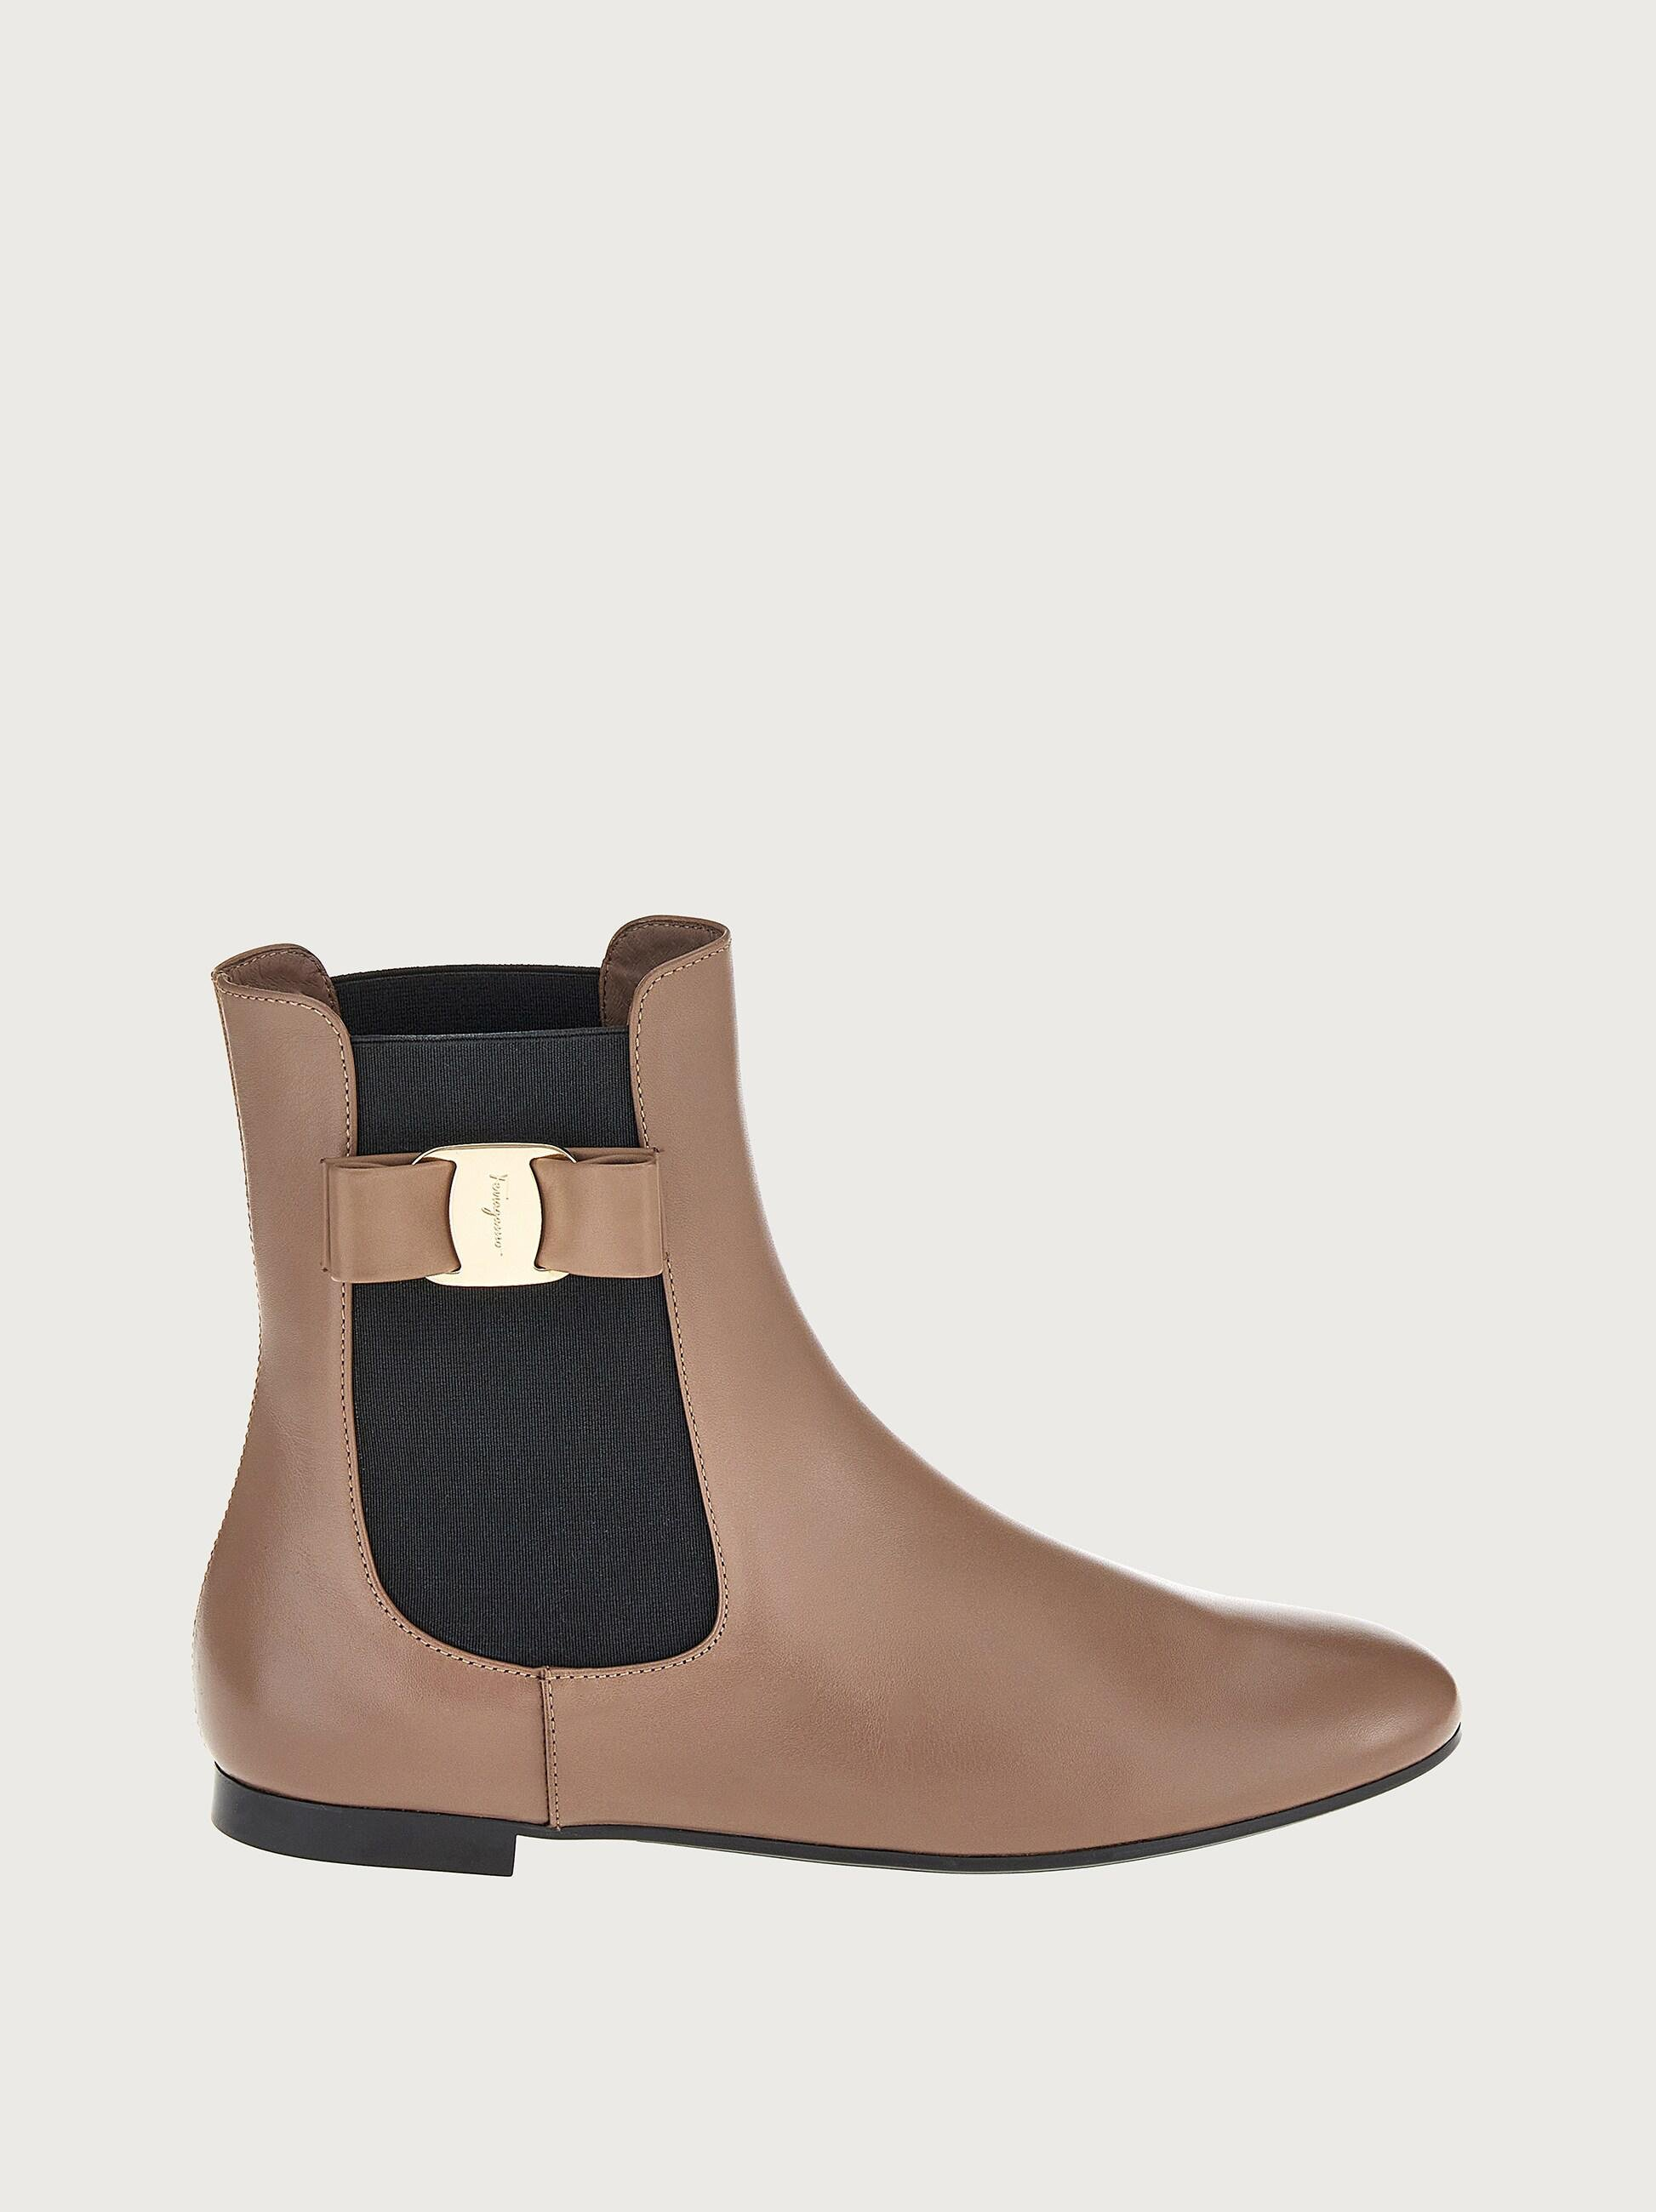 CHELSEA BOOT WITH VARA BOW